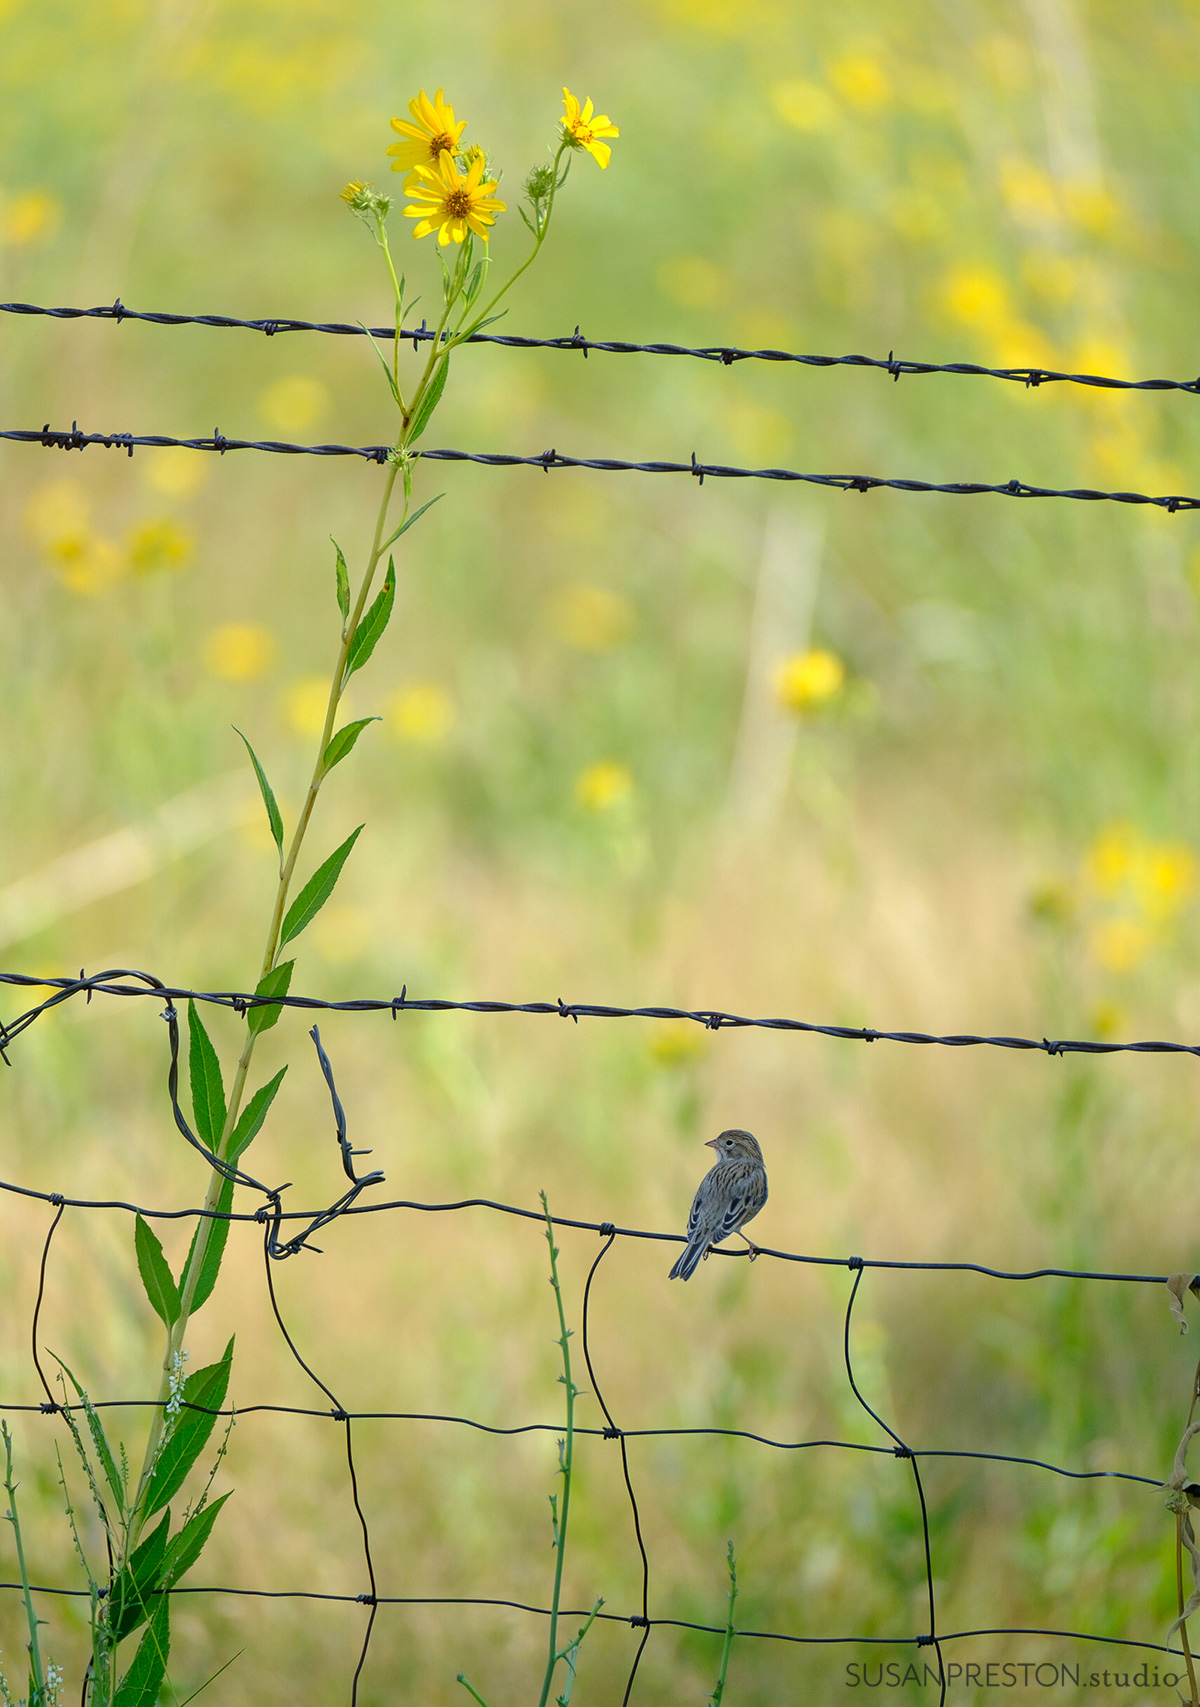 a small bird sits on a barbed wire fence surrounded by sunflowers in Taos New Mexico